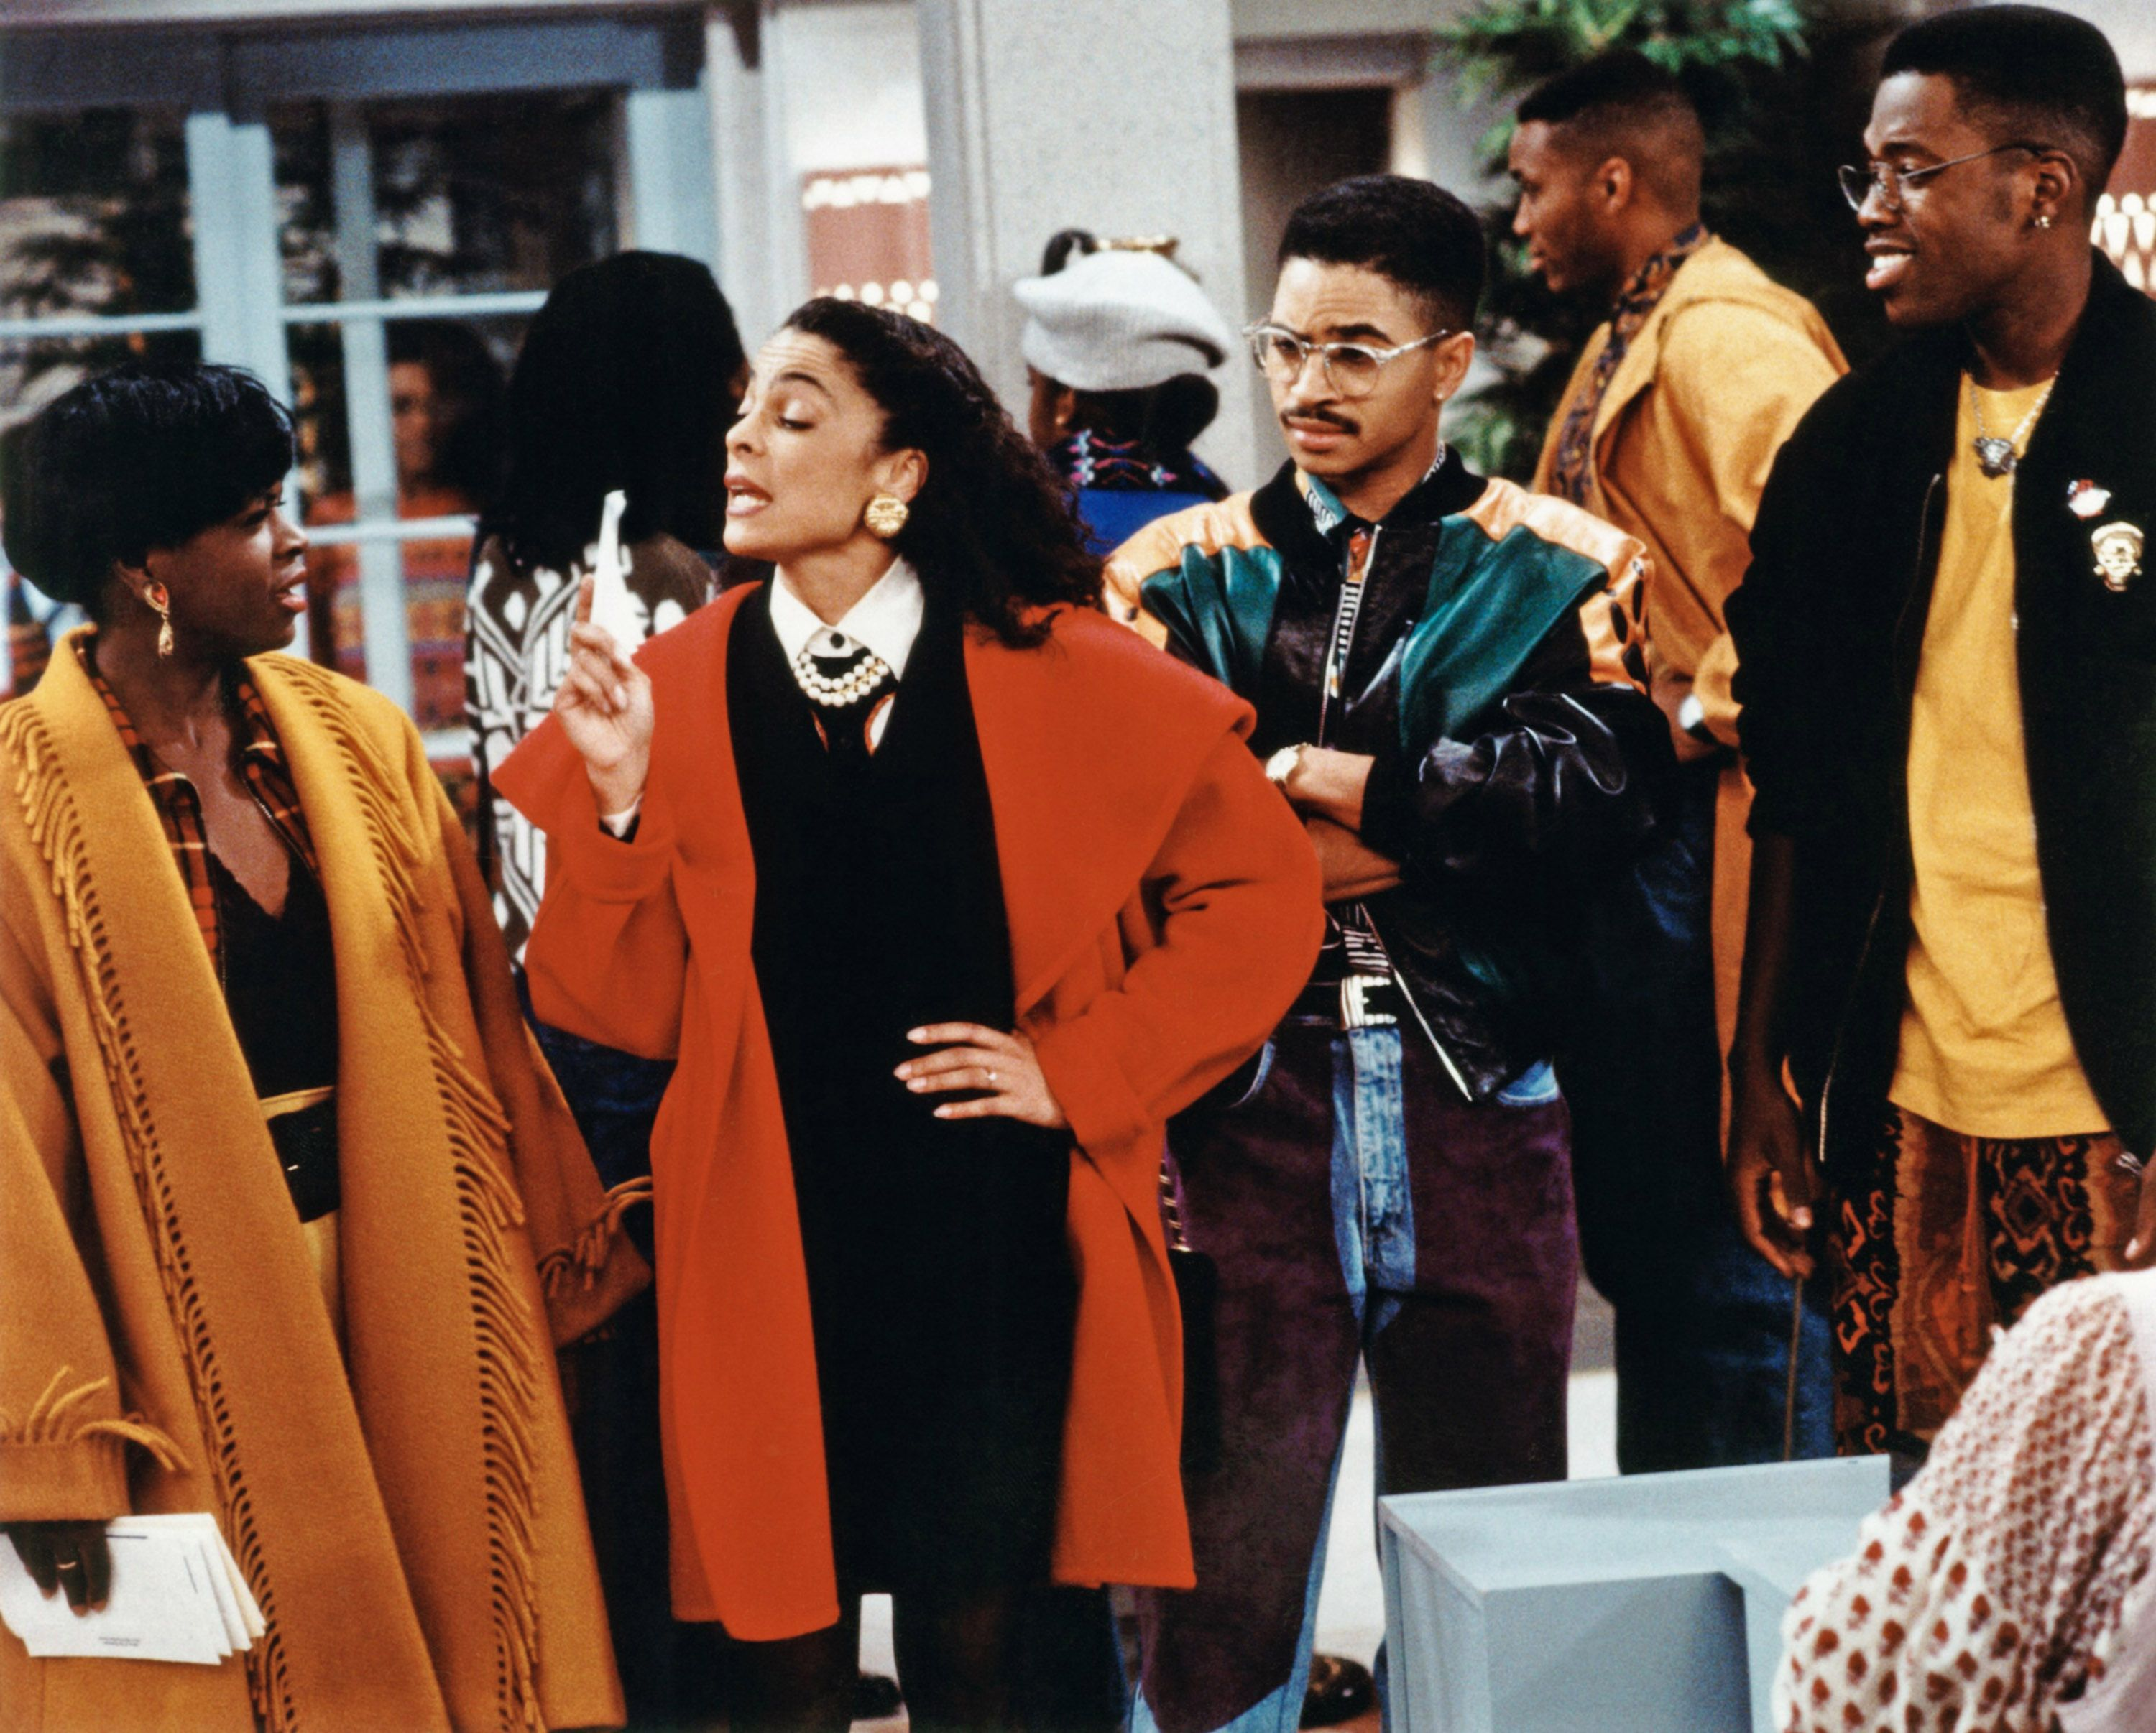 A DIFFERENT WORLD, Jasmine Guy (2nd from left), Darryl Bell (2nd from right), Kadeem Hardison (right